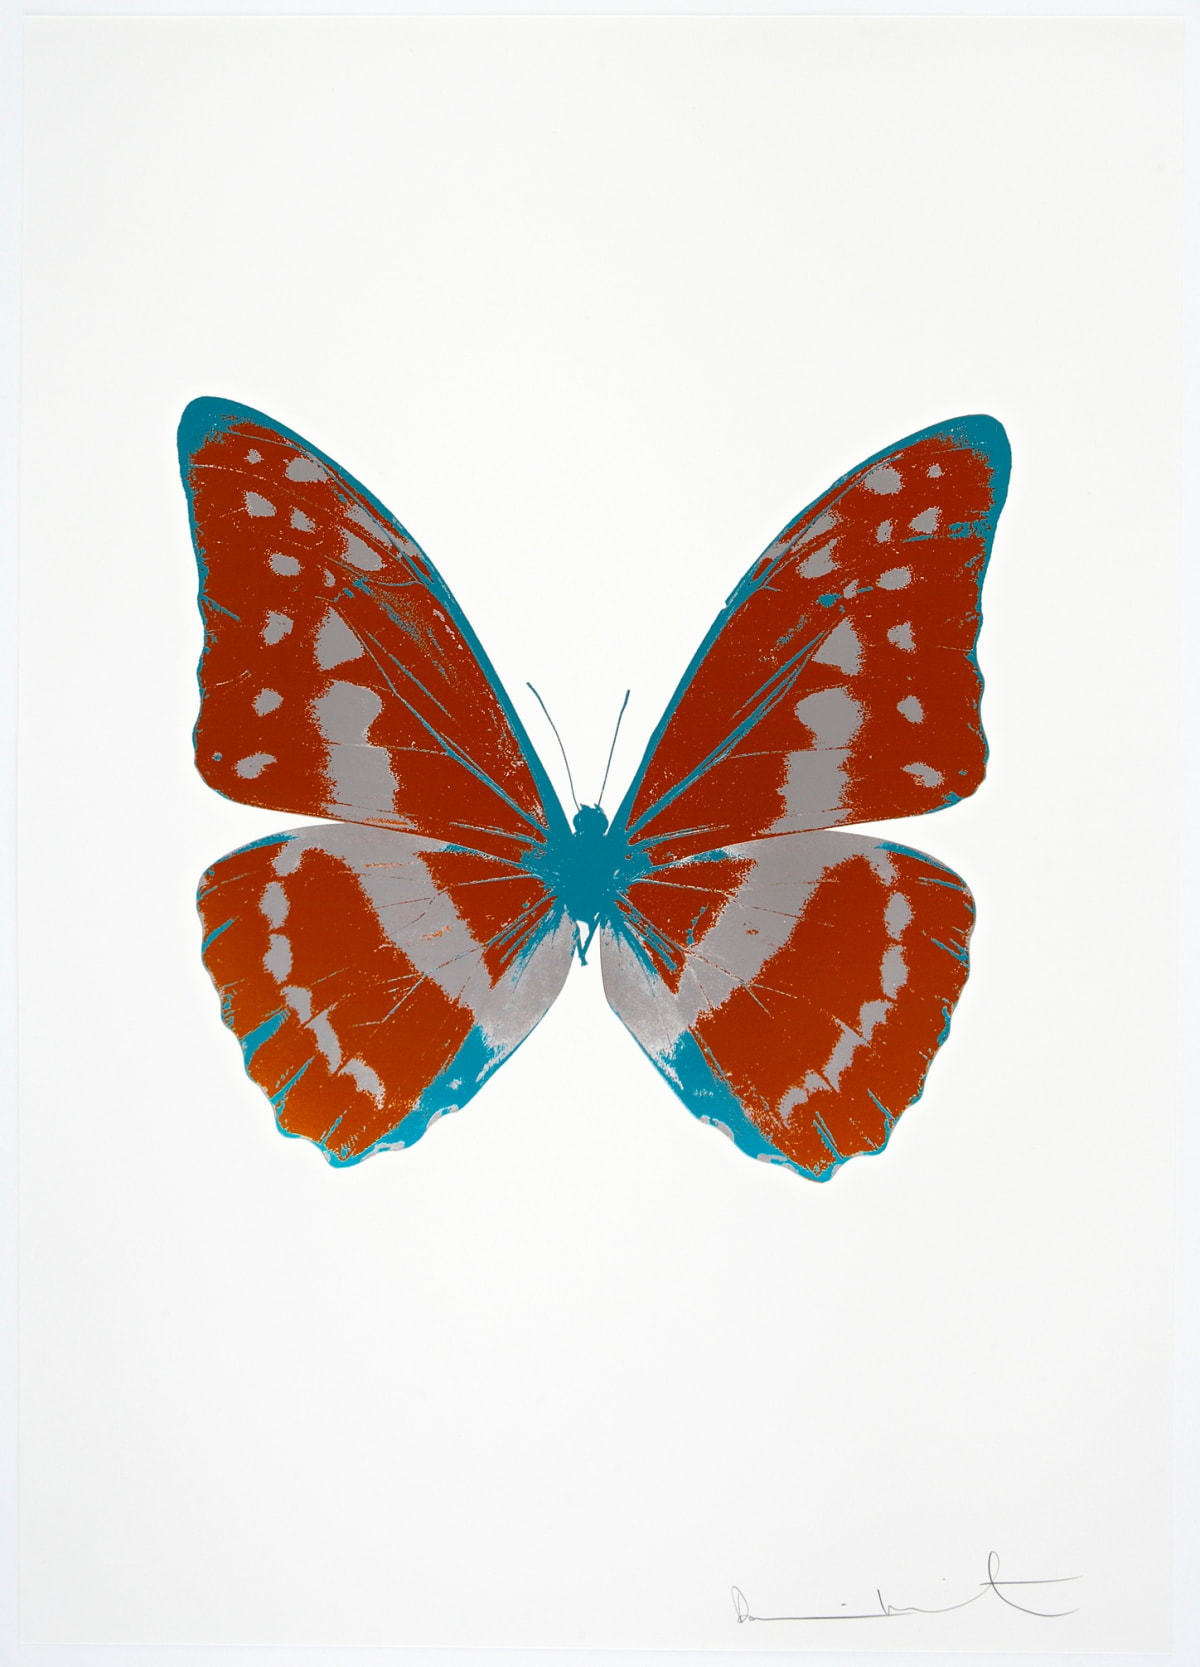 Damien Hirst The Souls III - Prairie Copper/Silver Gloss/Topaz, 2010 3 colour foil block on 300gsm Arches 88 archival paper. Signed and numbered. Published by Paul Stolper and Other Criteria 72 x 51cm OC7915 / 660-18 Edition of 15